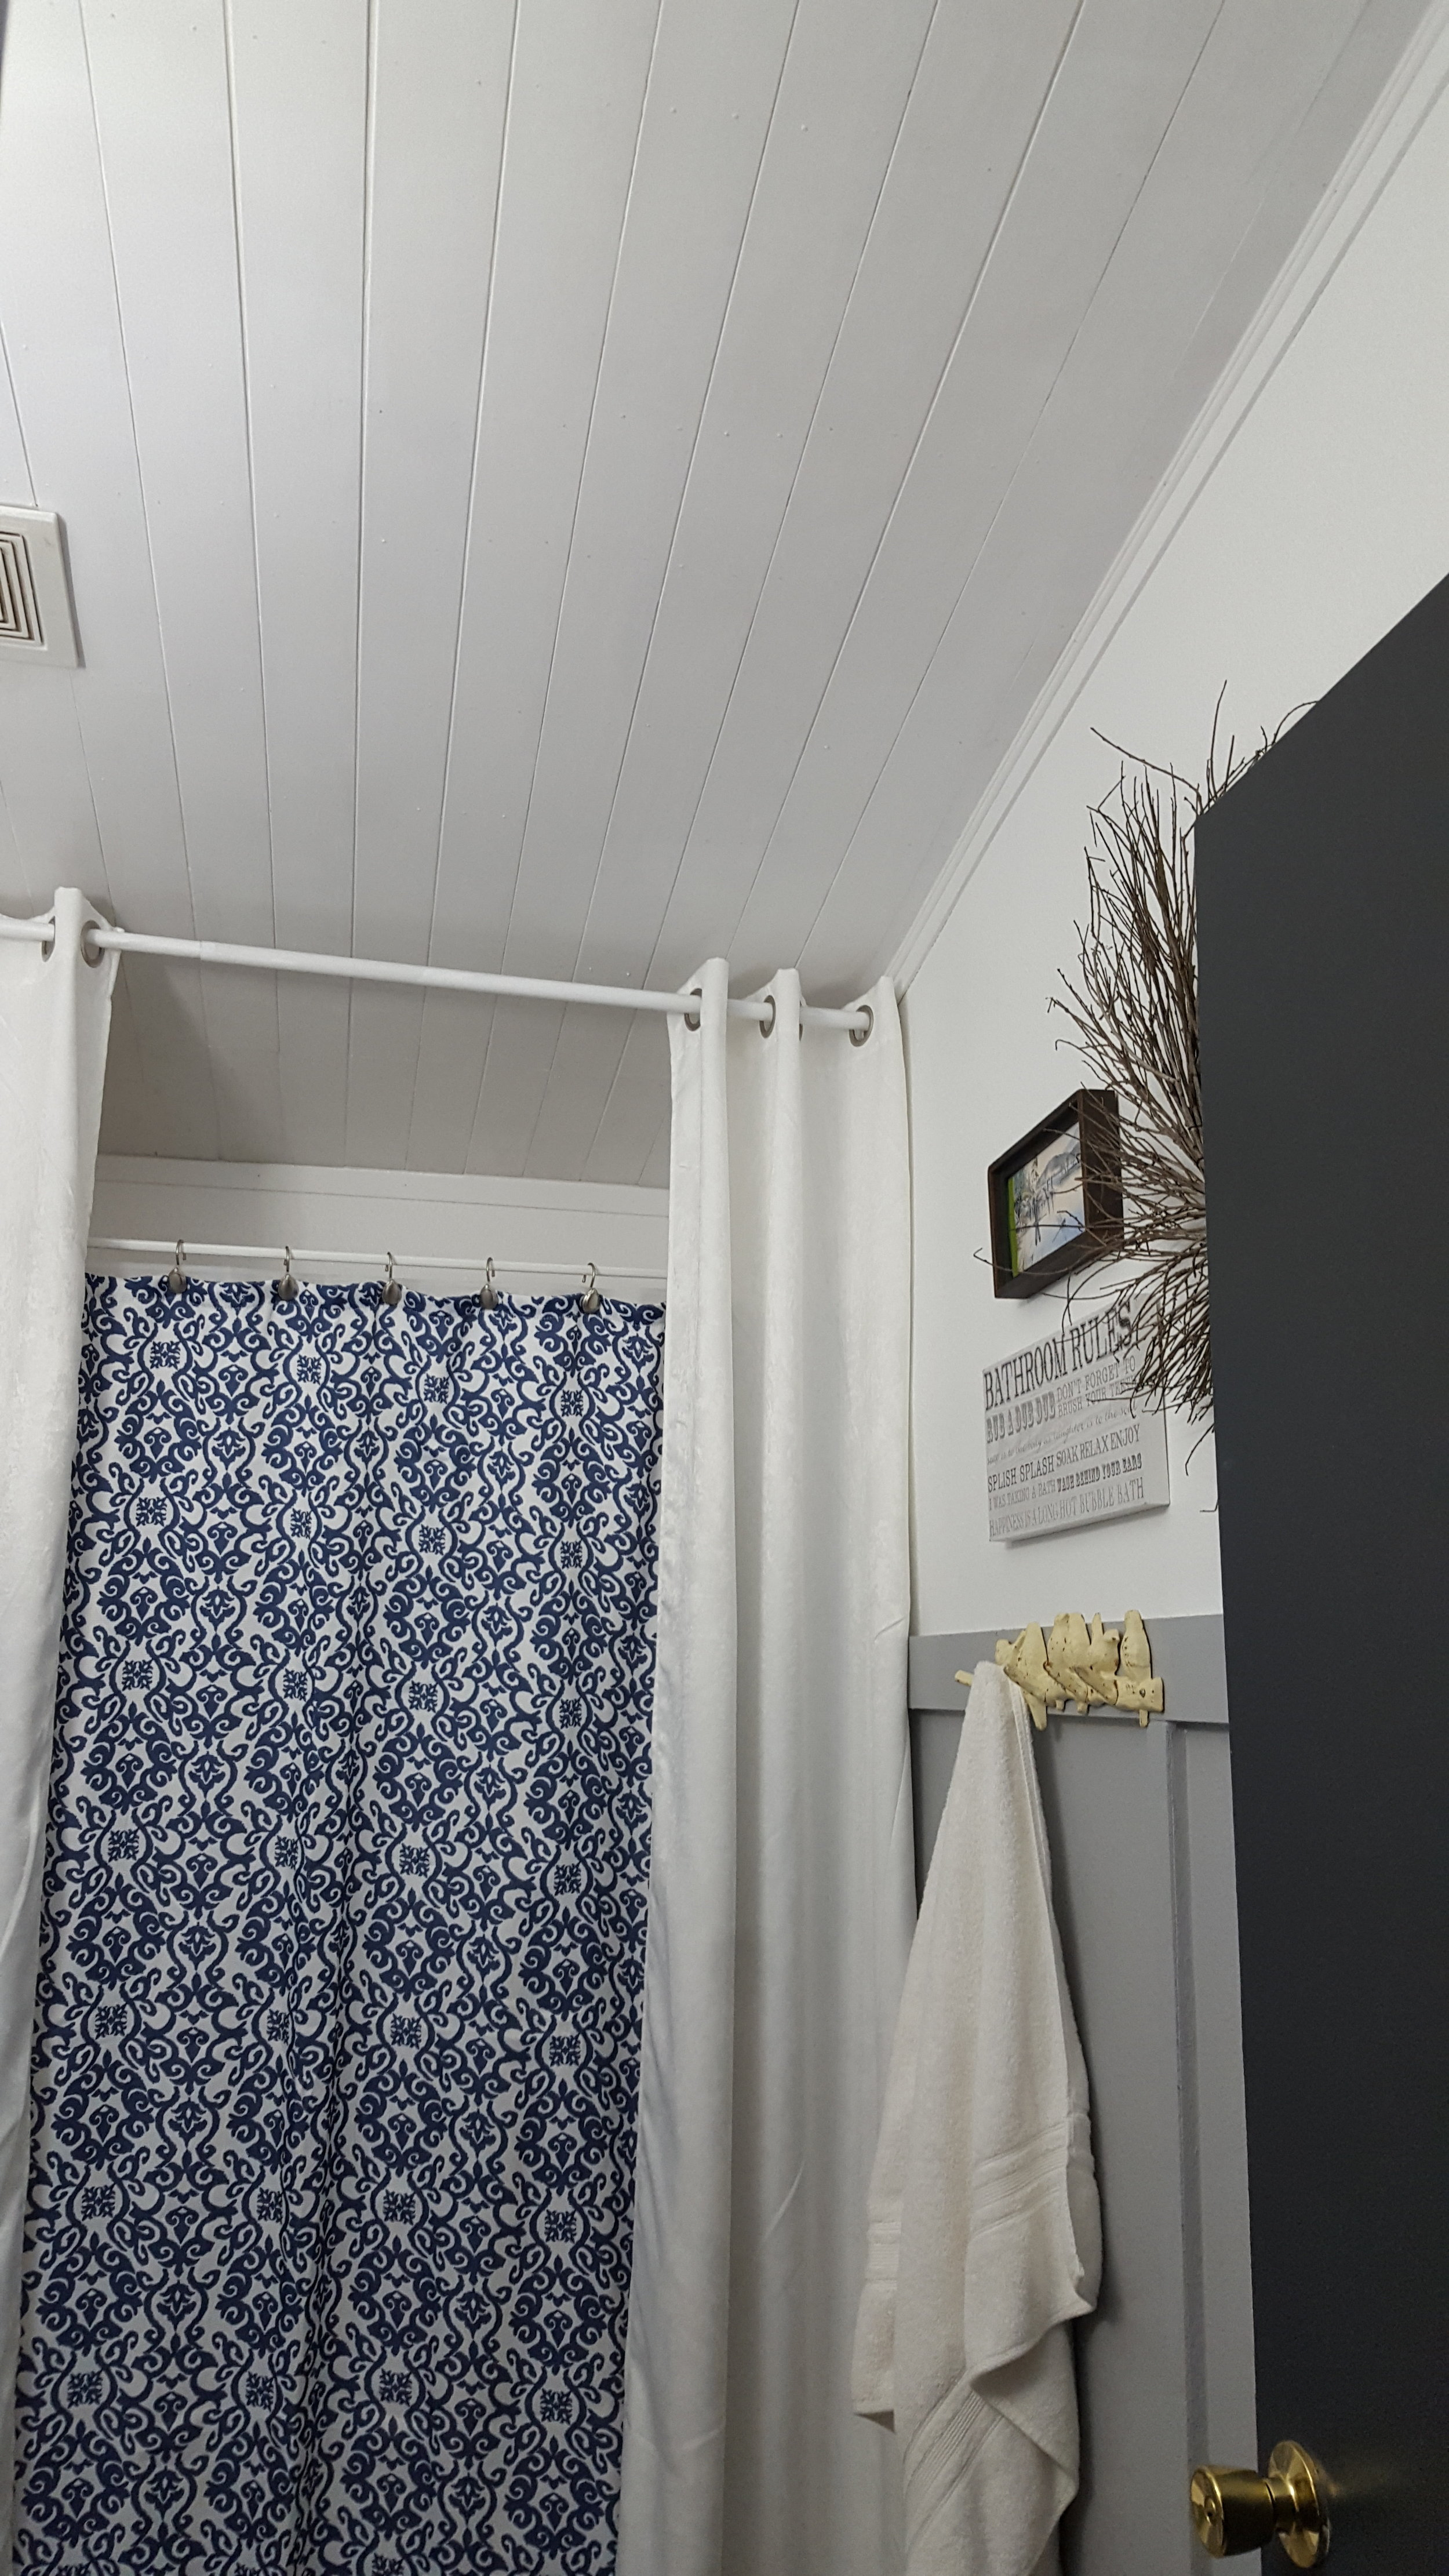 diy planked ceiling in bathroom.jpg